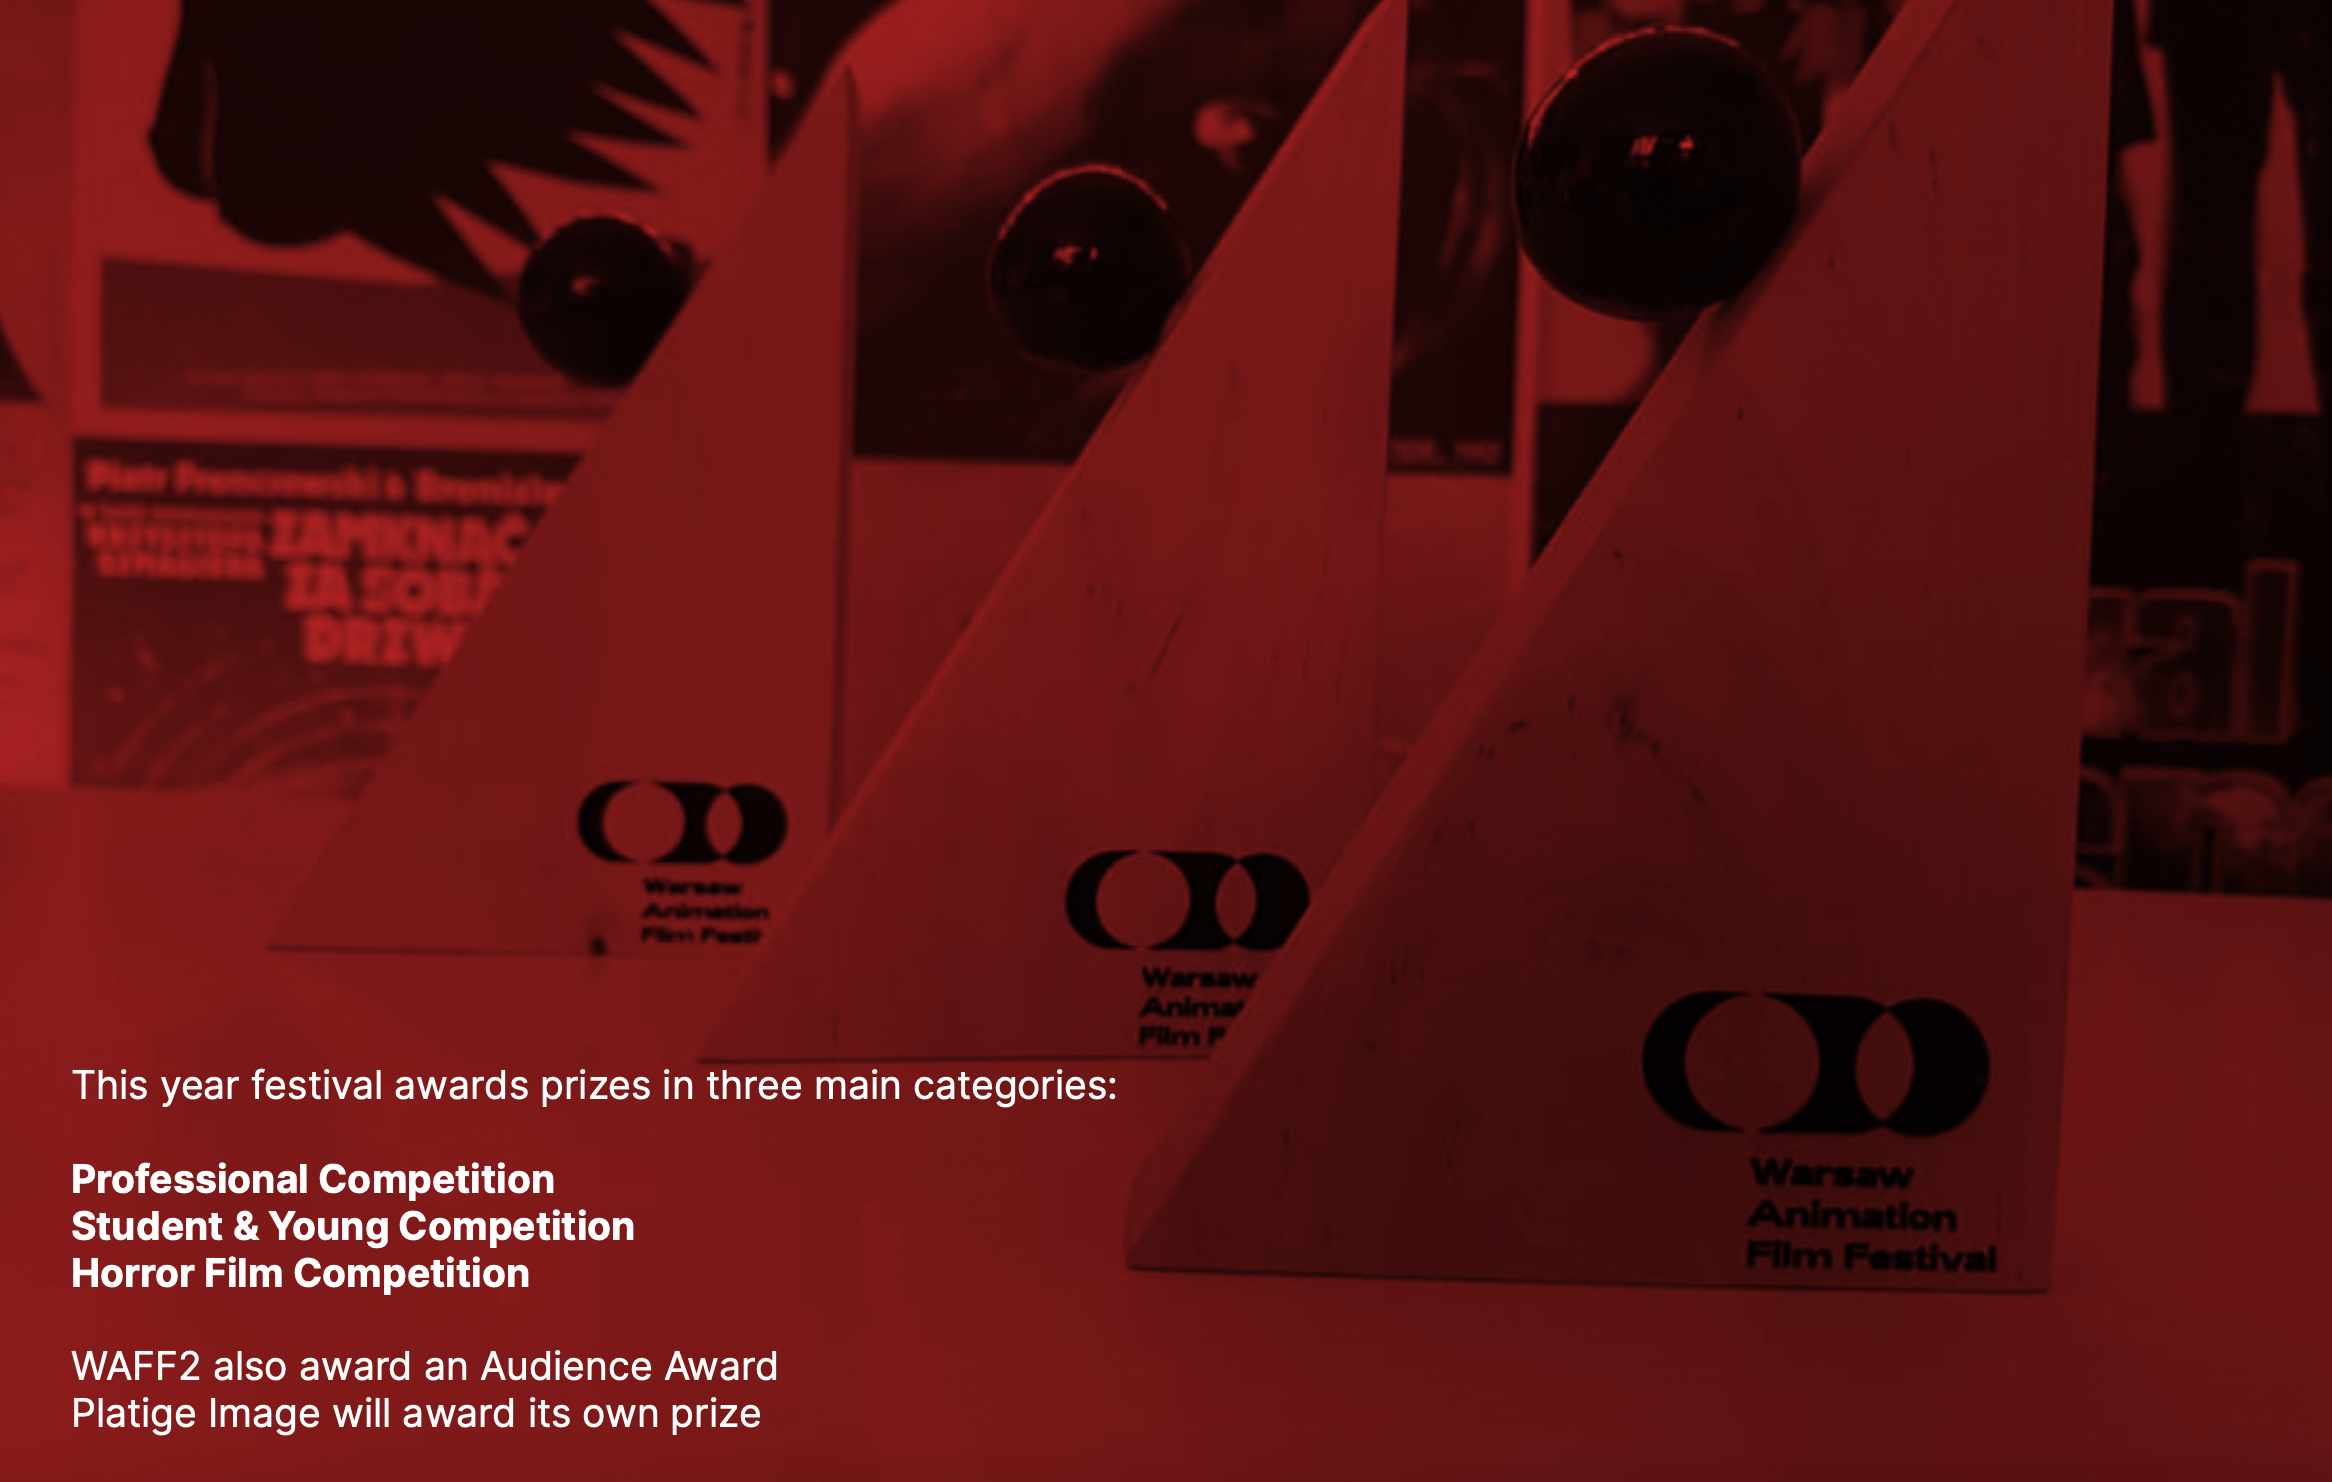 This year festival awards prizes in three main categories: Professional Competition Student & Young Competition Horror Film Competition WAFF2 also award an Audience Award Platige Image will award its own prize